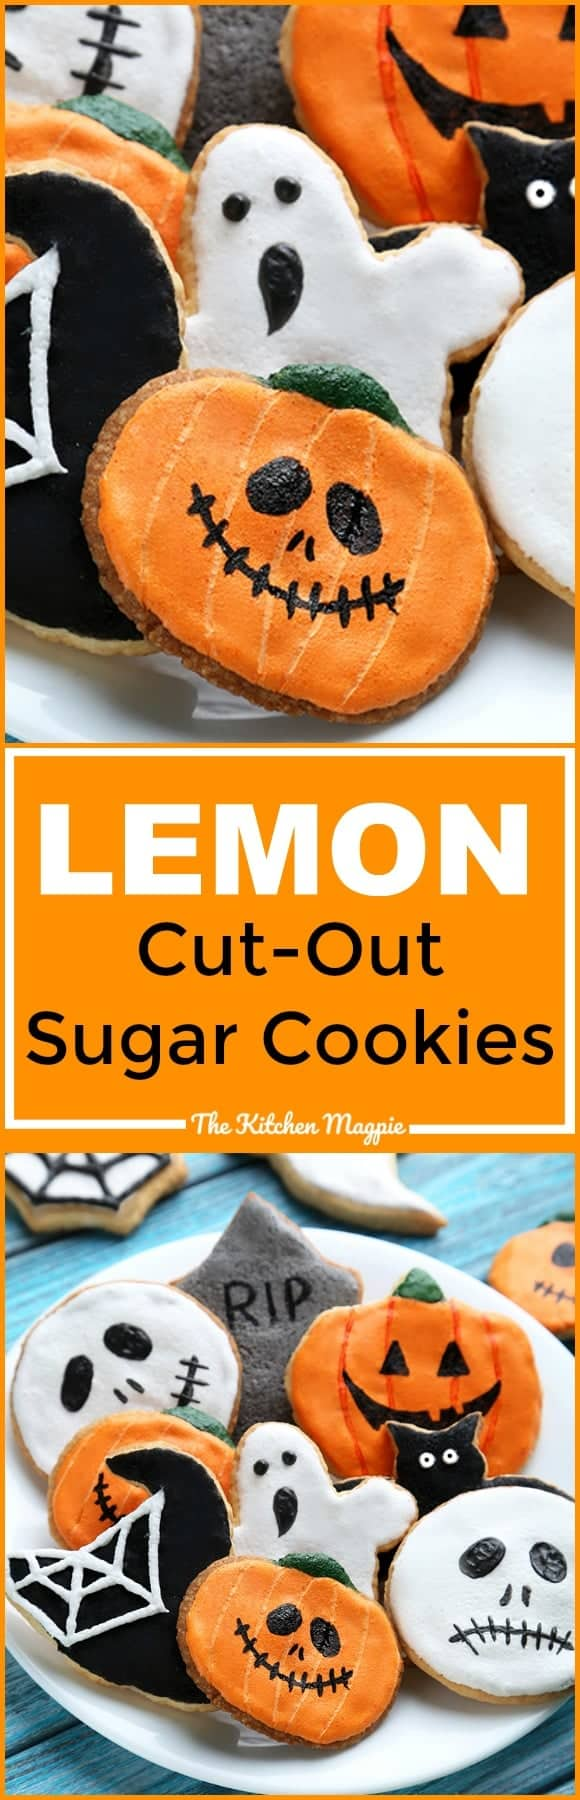 Lemon sugar cookies (with lemon sugar cookie icing!) are the most delicious cut-out sugar cookie around!  Perfect for Halloween, Christmas cookies and more! From @kitchenmagpie #cookies #halloween #christmas #recipes